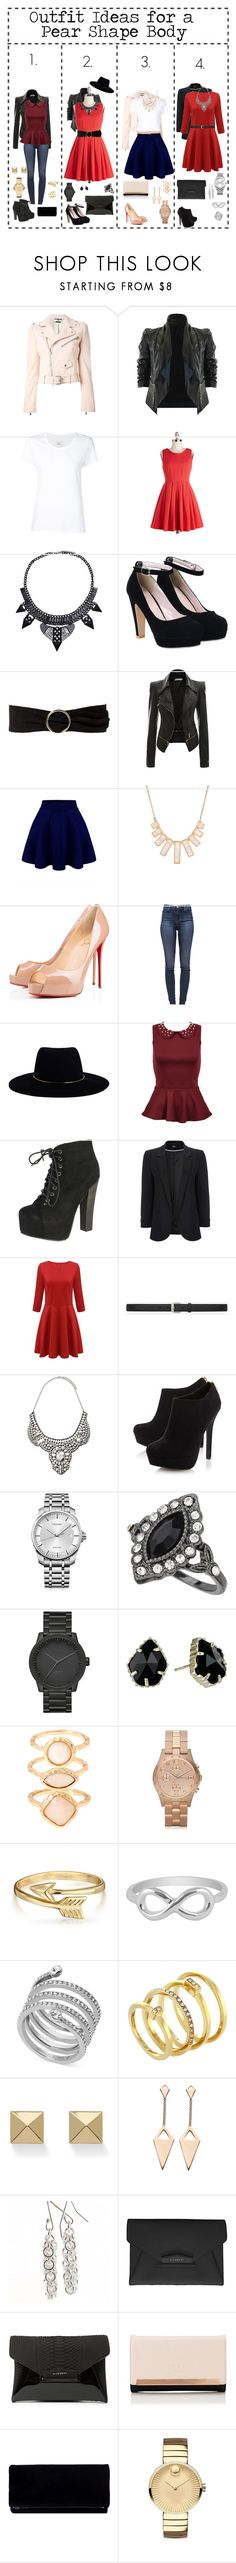 """""""Outfit Ideas For Pear Shape Body"""" by happyrandomness ❤ liked on Polyvore featuring Alexander McQueen, Max 'n Chester, MANGO, Rivka Friedman, Christian Louboutin, J Brand, Zimmermann, Breckelle's, Wallis and Yves Saint Laurent"""